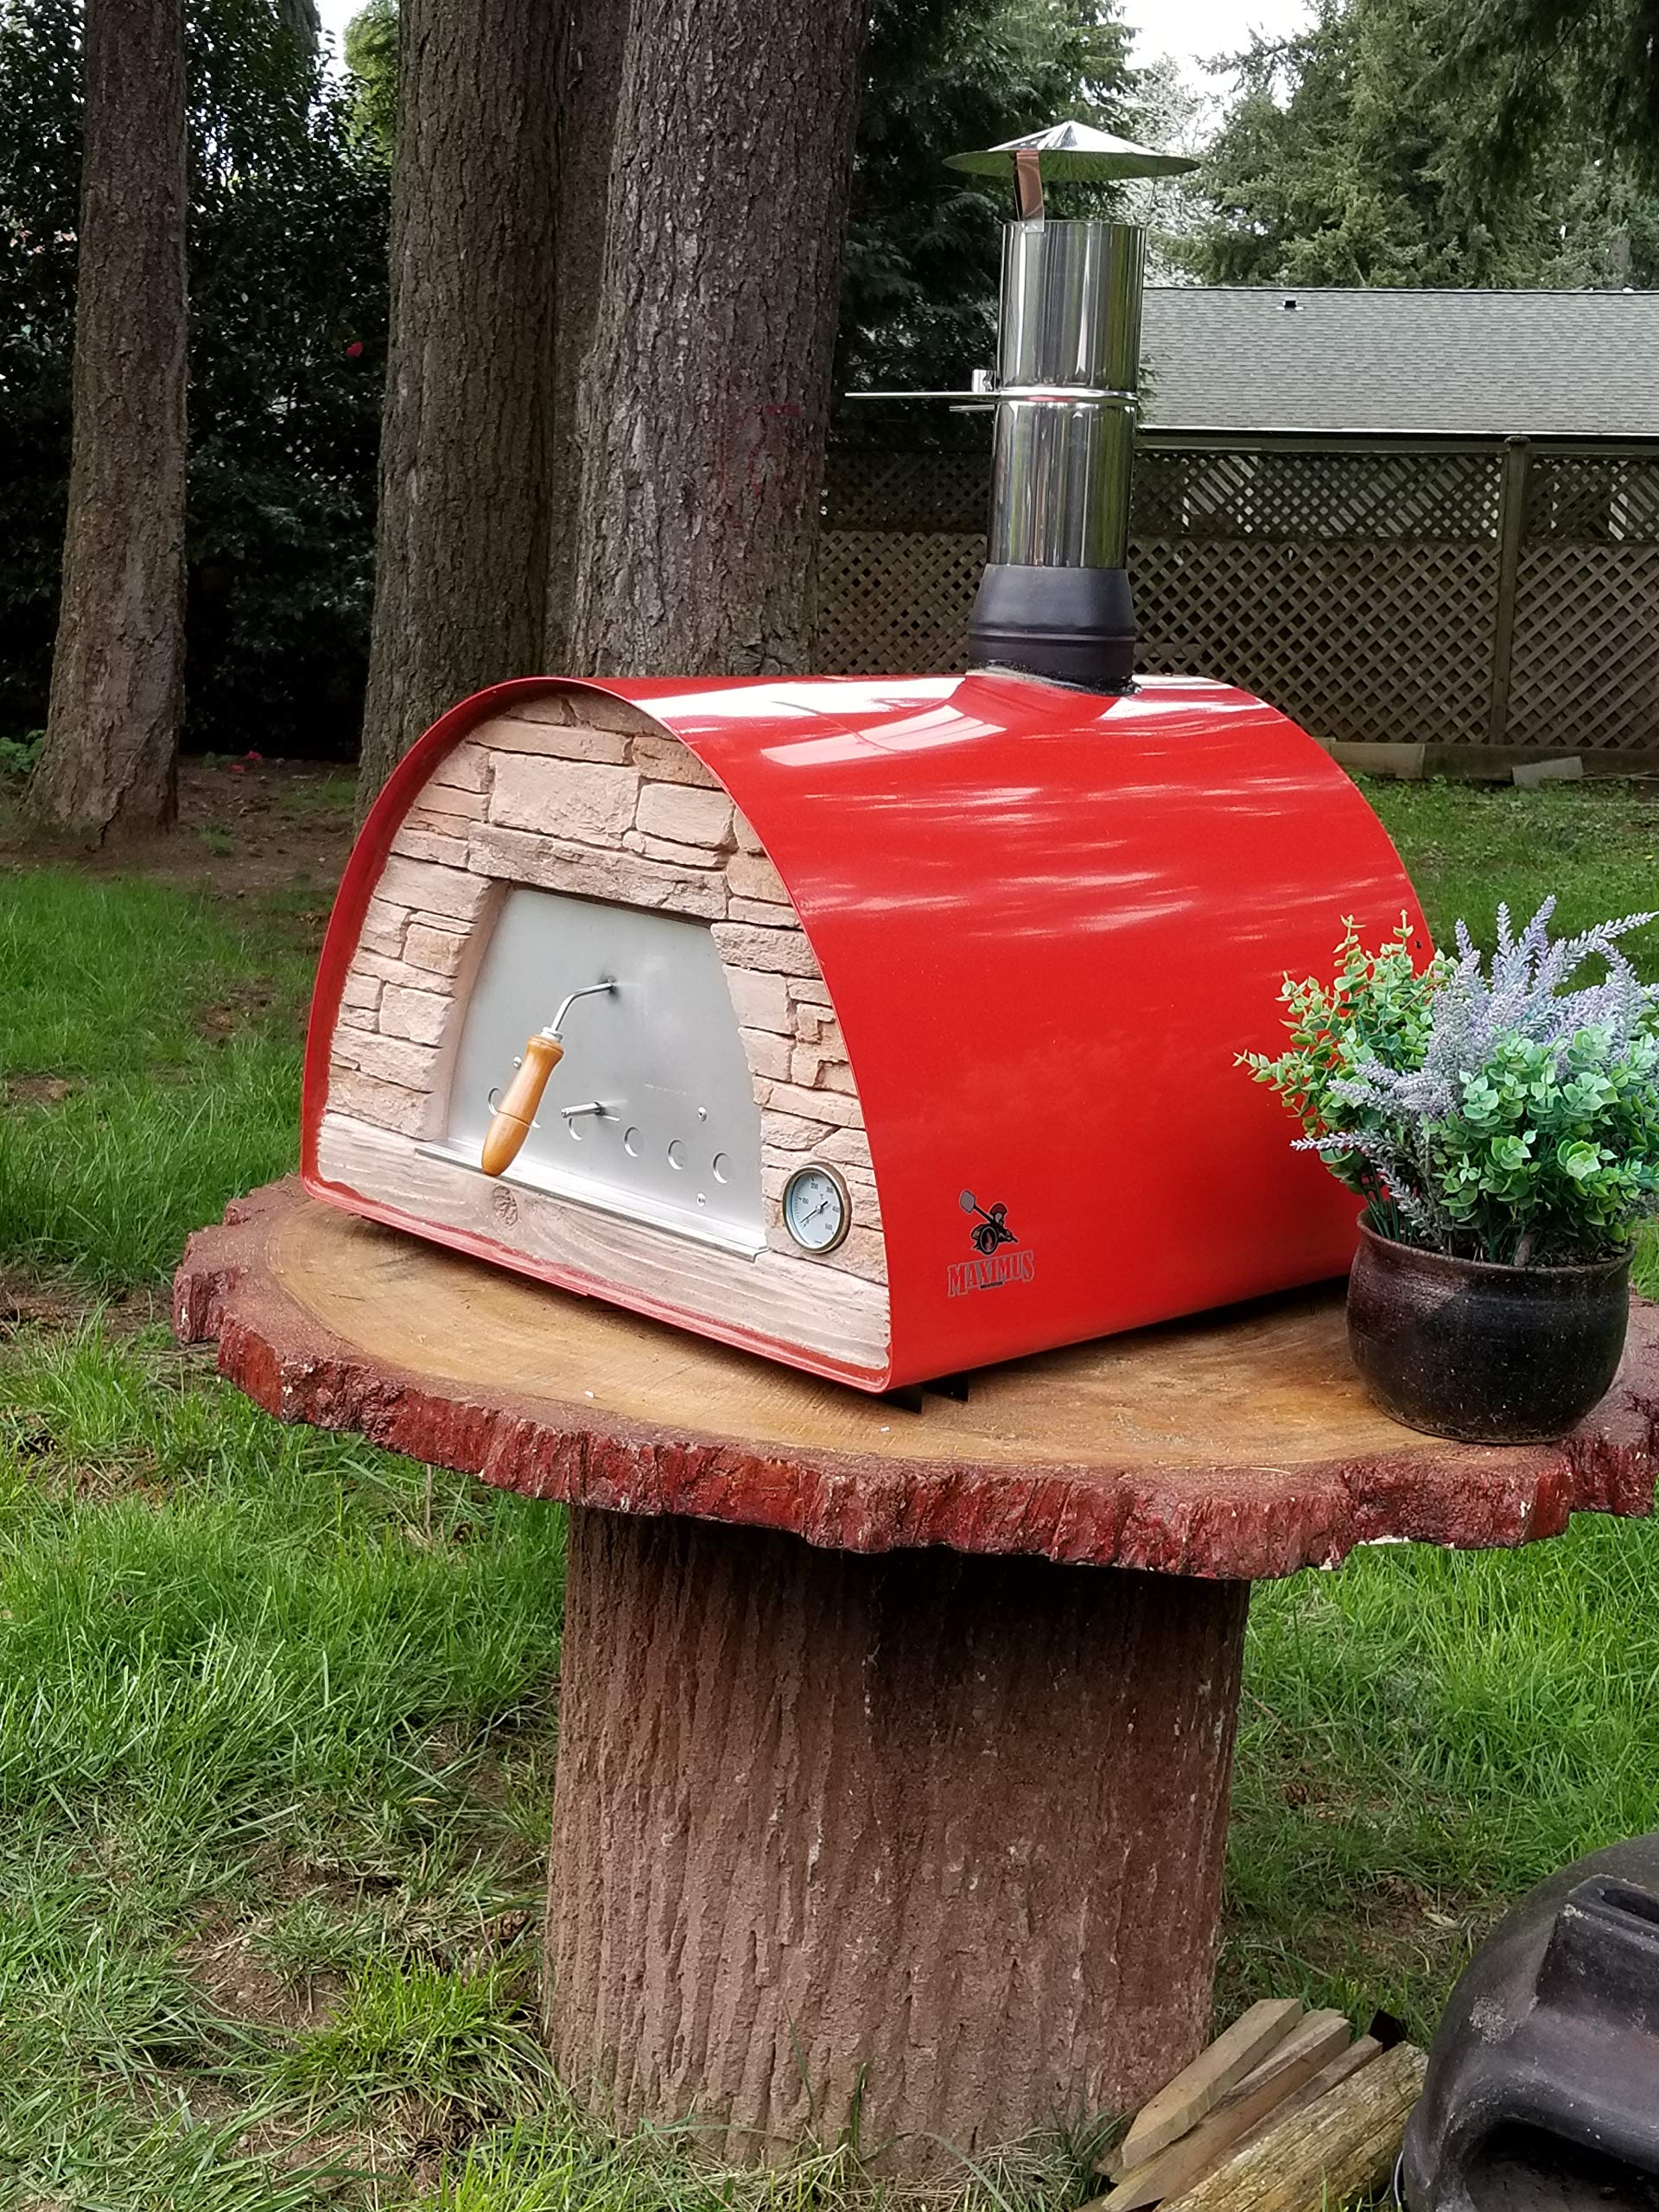 Authentic Pizza Ovens Maximus Red Handmade Wood Fire Oven